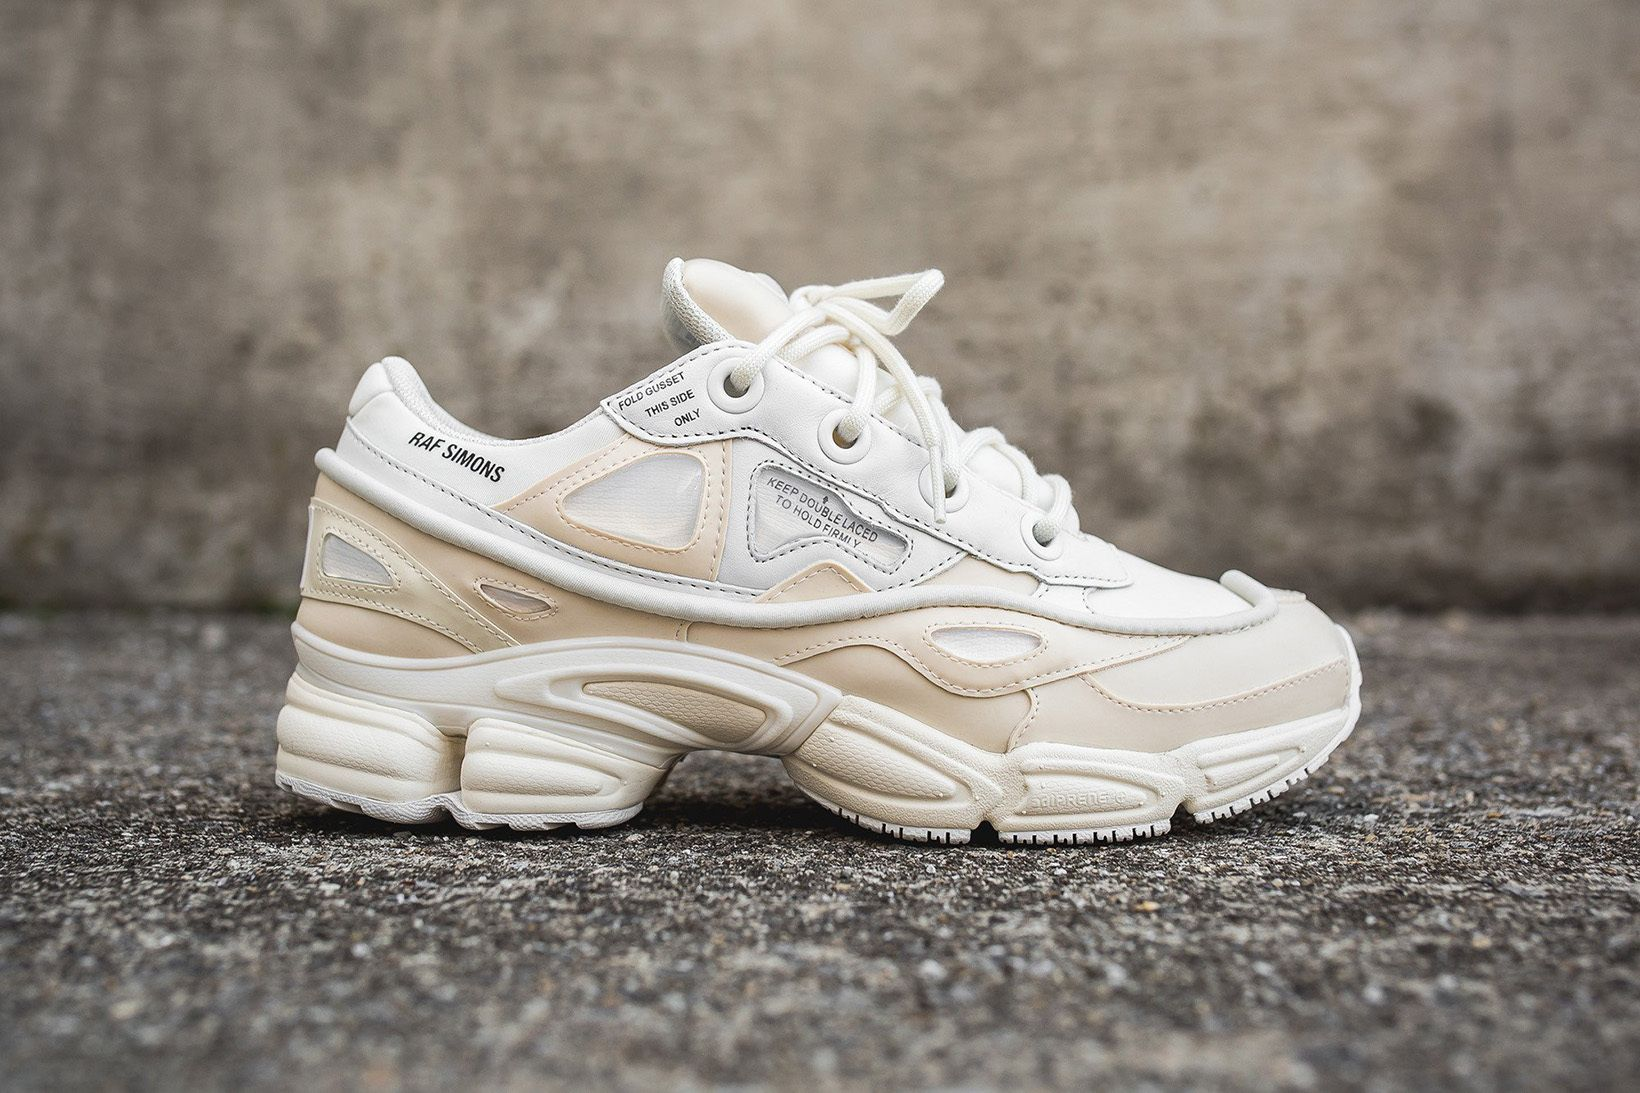 adidas & Raf Simons Unite for a Cream-Colored Ozweego Bunny